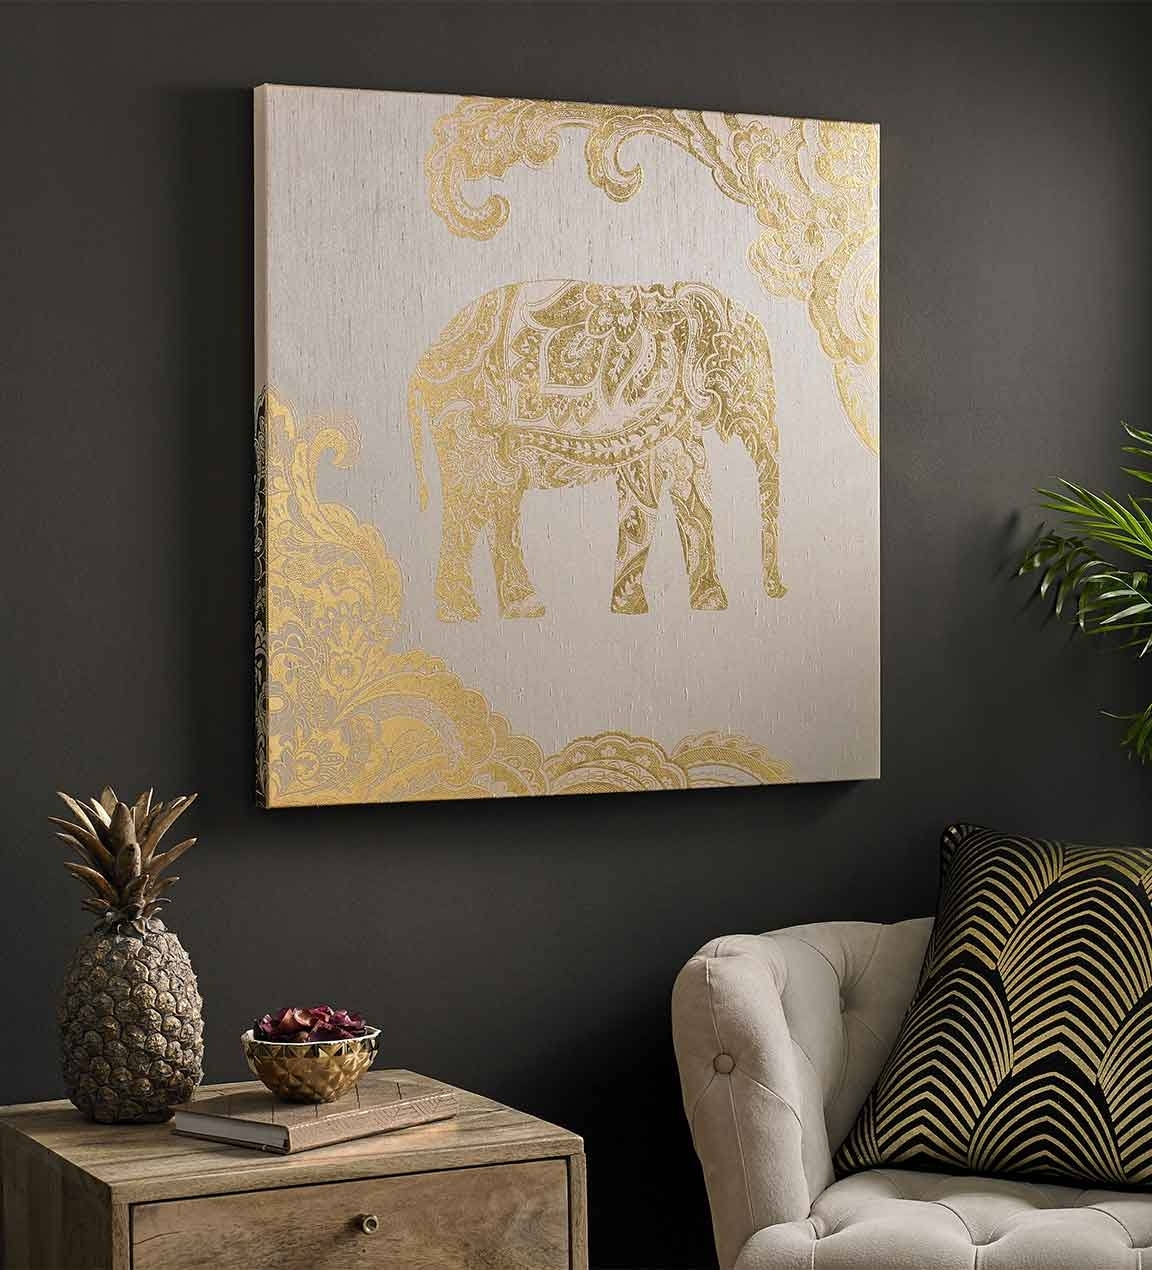 Wall Art | Wall Decor | Home And Office Decor For 2018 Art Wall Decor (View 19 of 20)